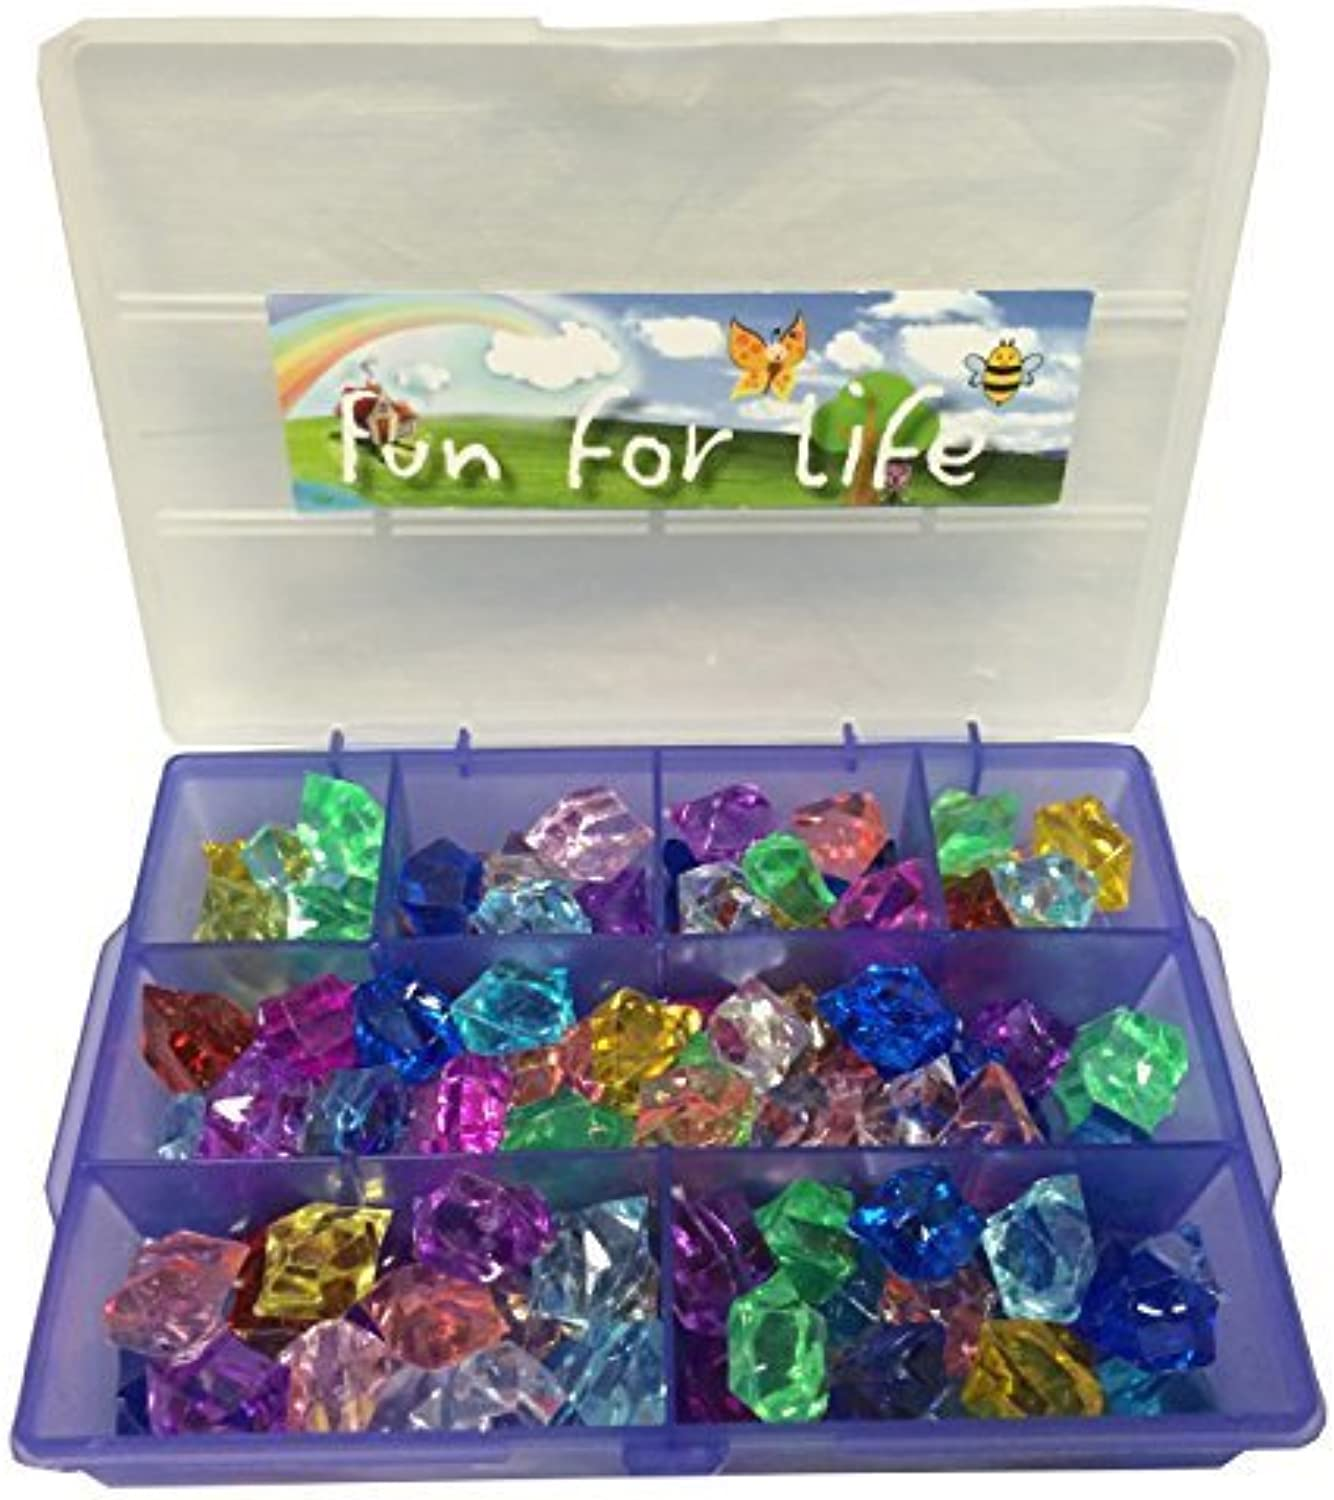 Bulk Pirate Jewels and Gem, Approx over 100 pieces and lila Grape Jewels Organizer for Party Decoration, Treasure Hunting Events by Fun For Life